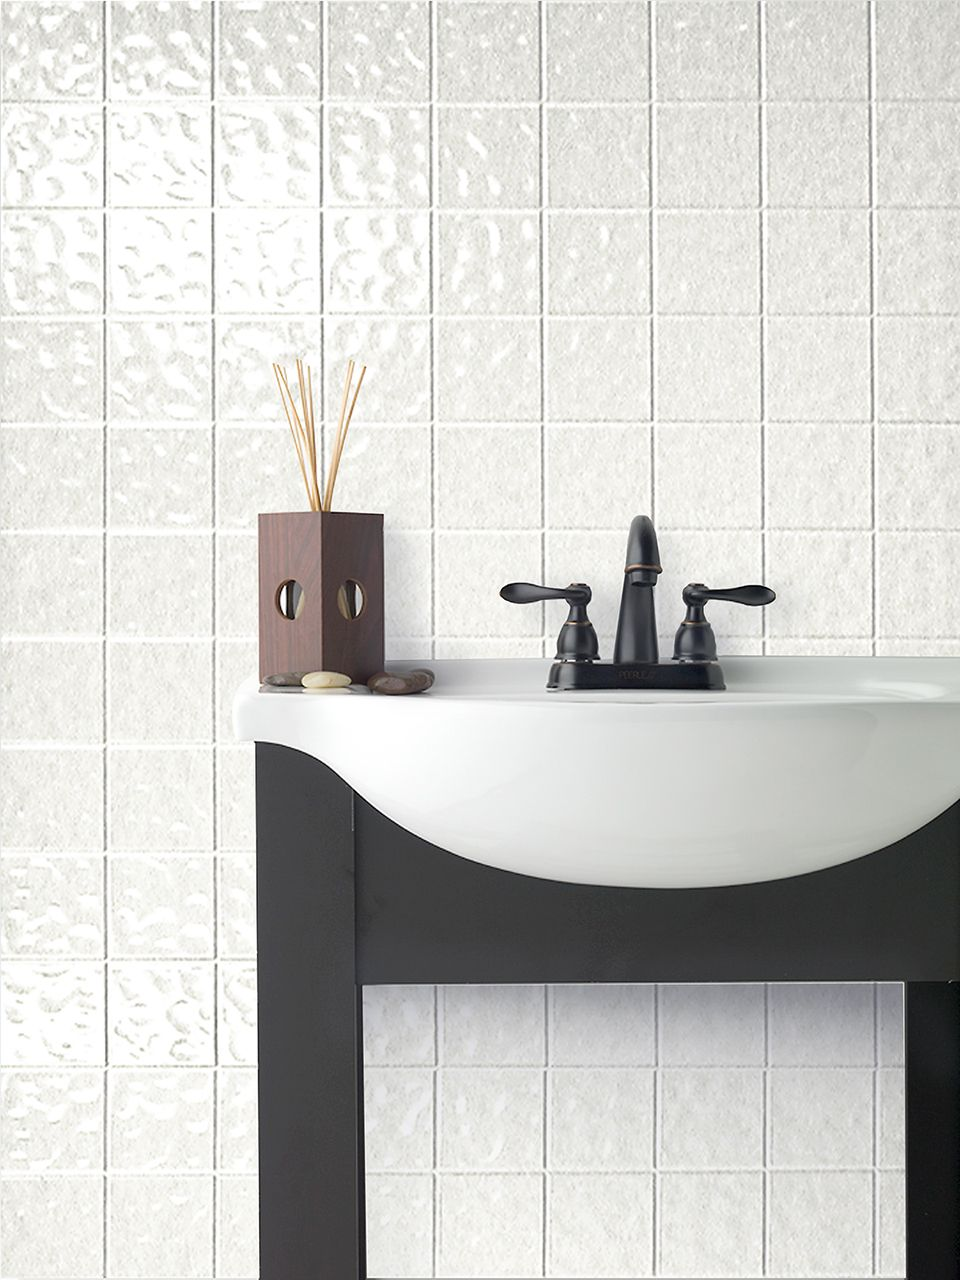 Toned White Tile Board Decorative Wall Panels Decorative Panels White Tiles Decorative paneling for bathrooms